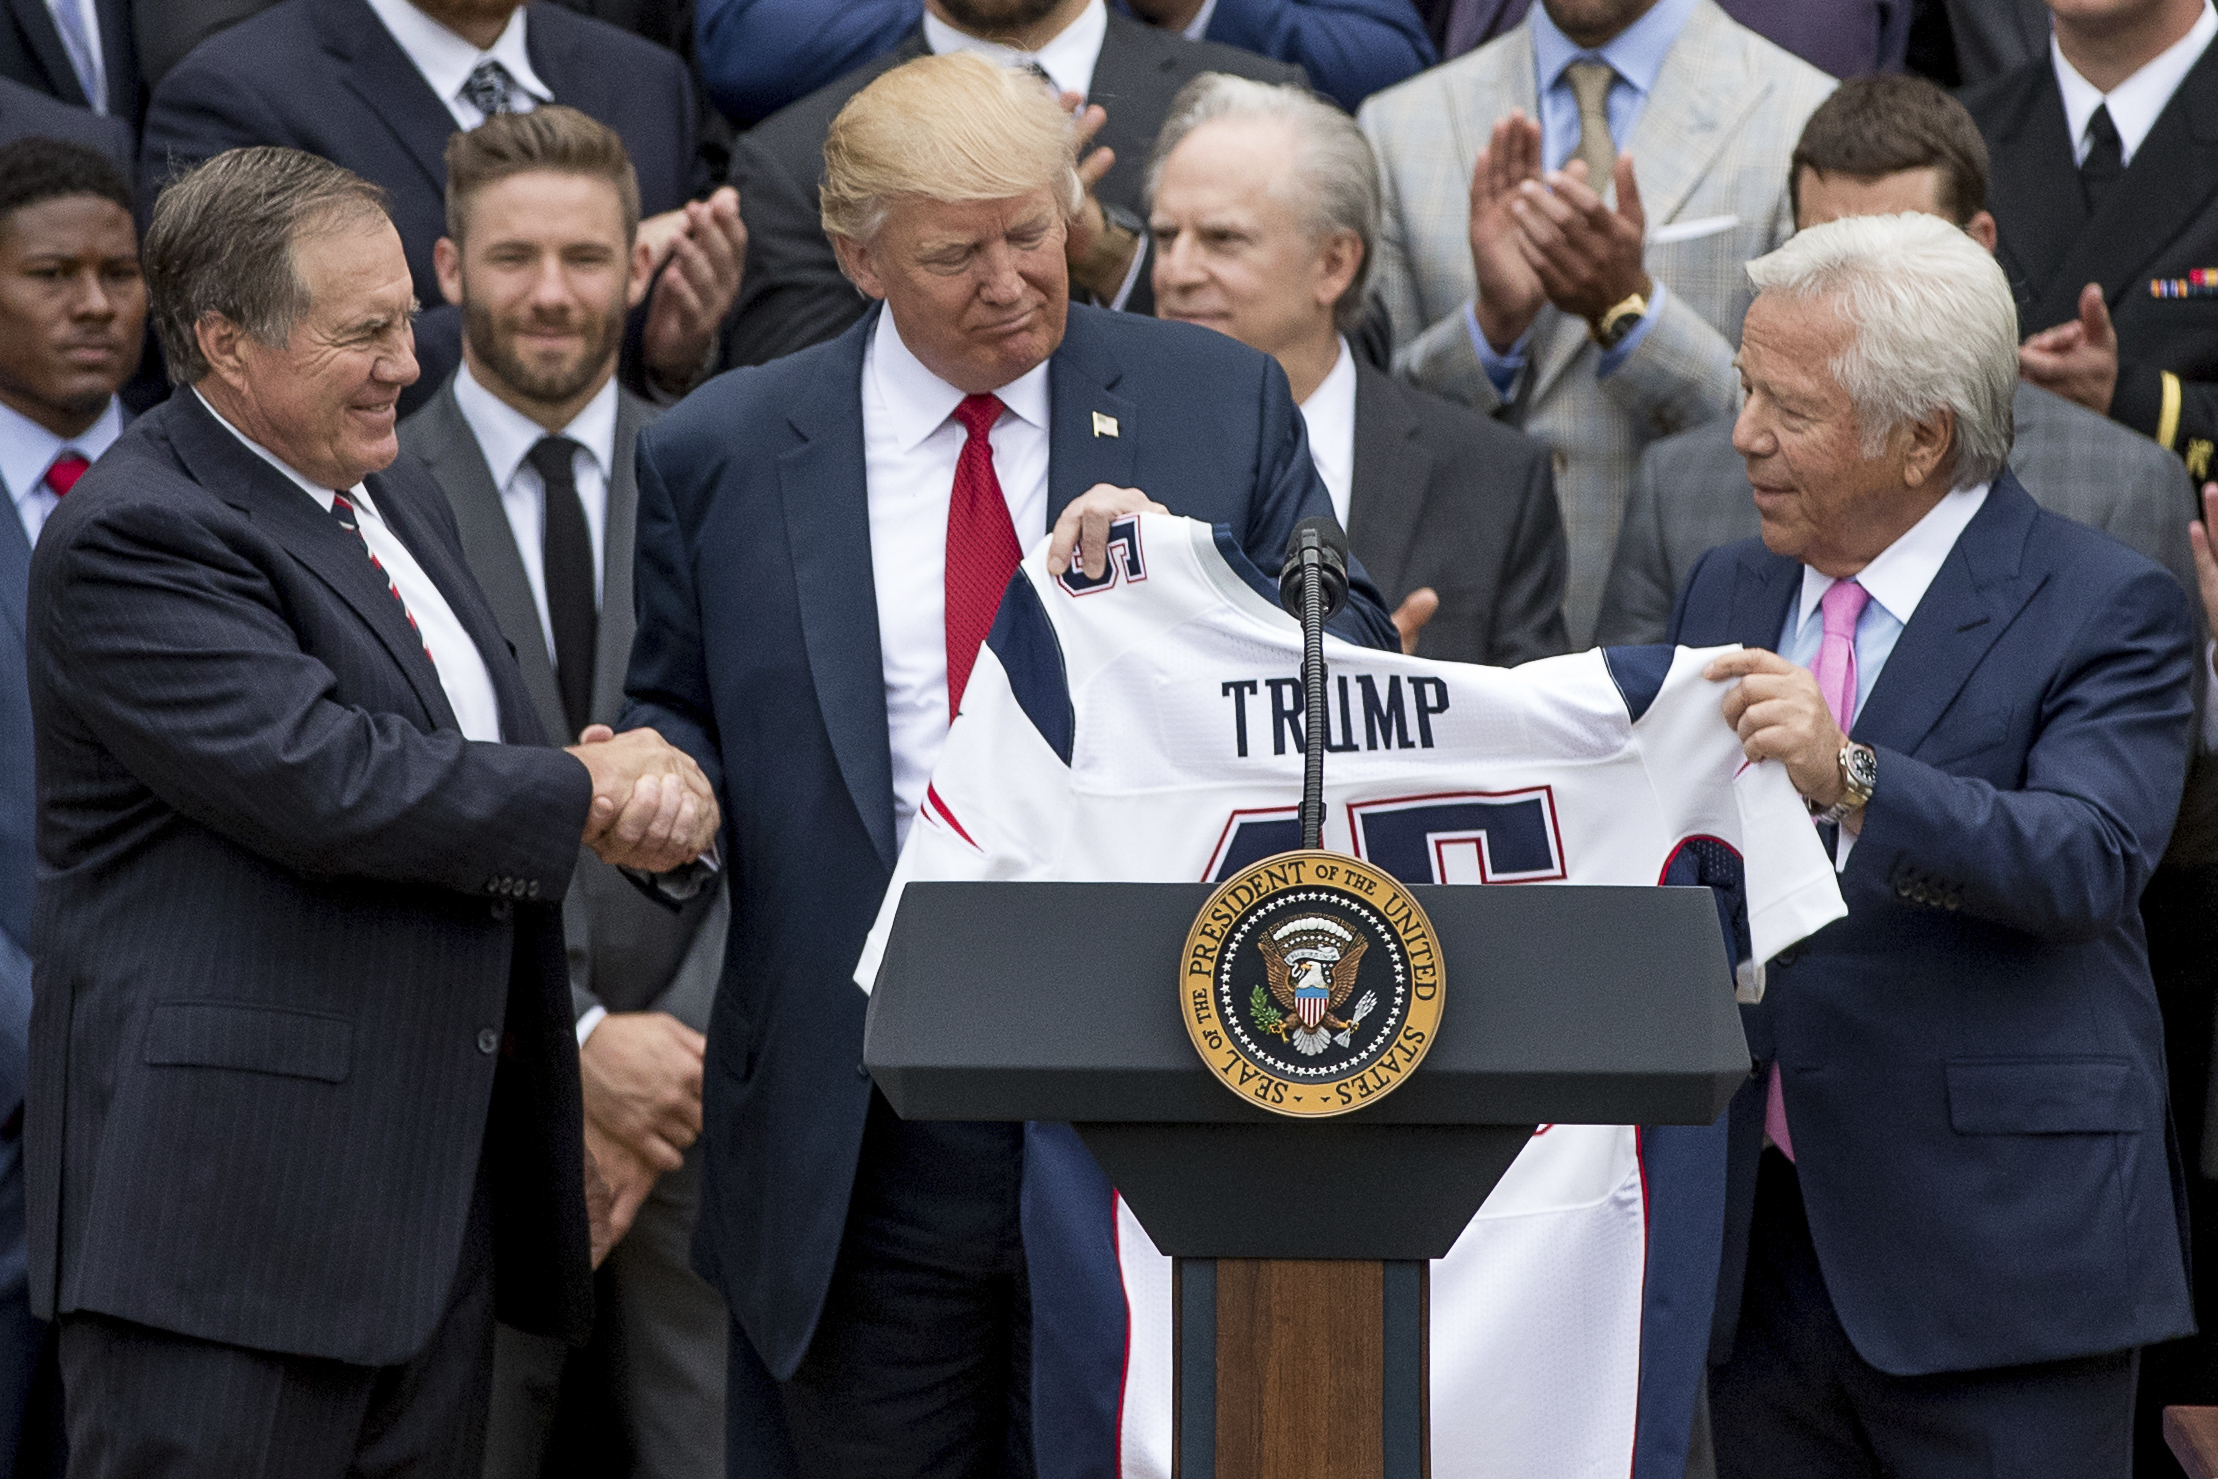 President Donald Trump is presented with a New England Patriots jersey by Patriots head coach Bill Belichick, left, and New England Patriots owner Robert Kraft during a ceremony on the South Lawn of the White House in Washington, Wednesday, April 19, 2017, where the president honored the Super Bowl Champion New England Patriots for their Super Bowl LI victory. (AP Photo/Andrew Harnik)